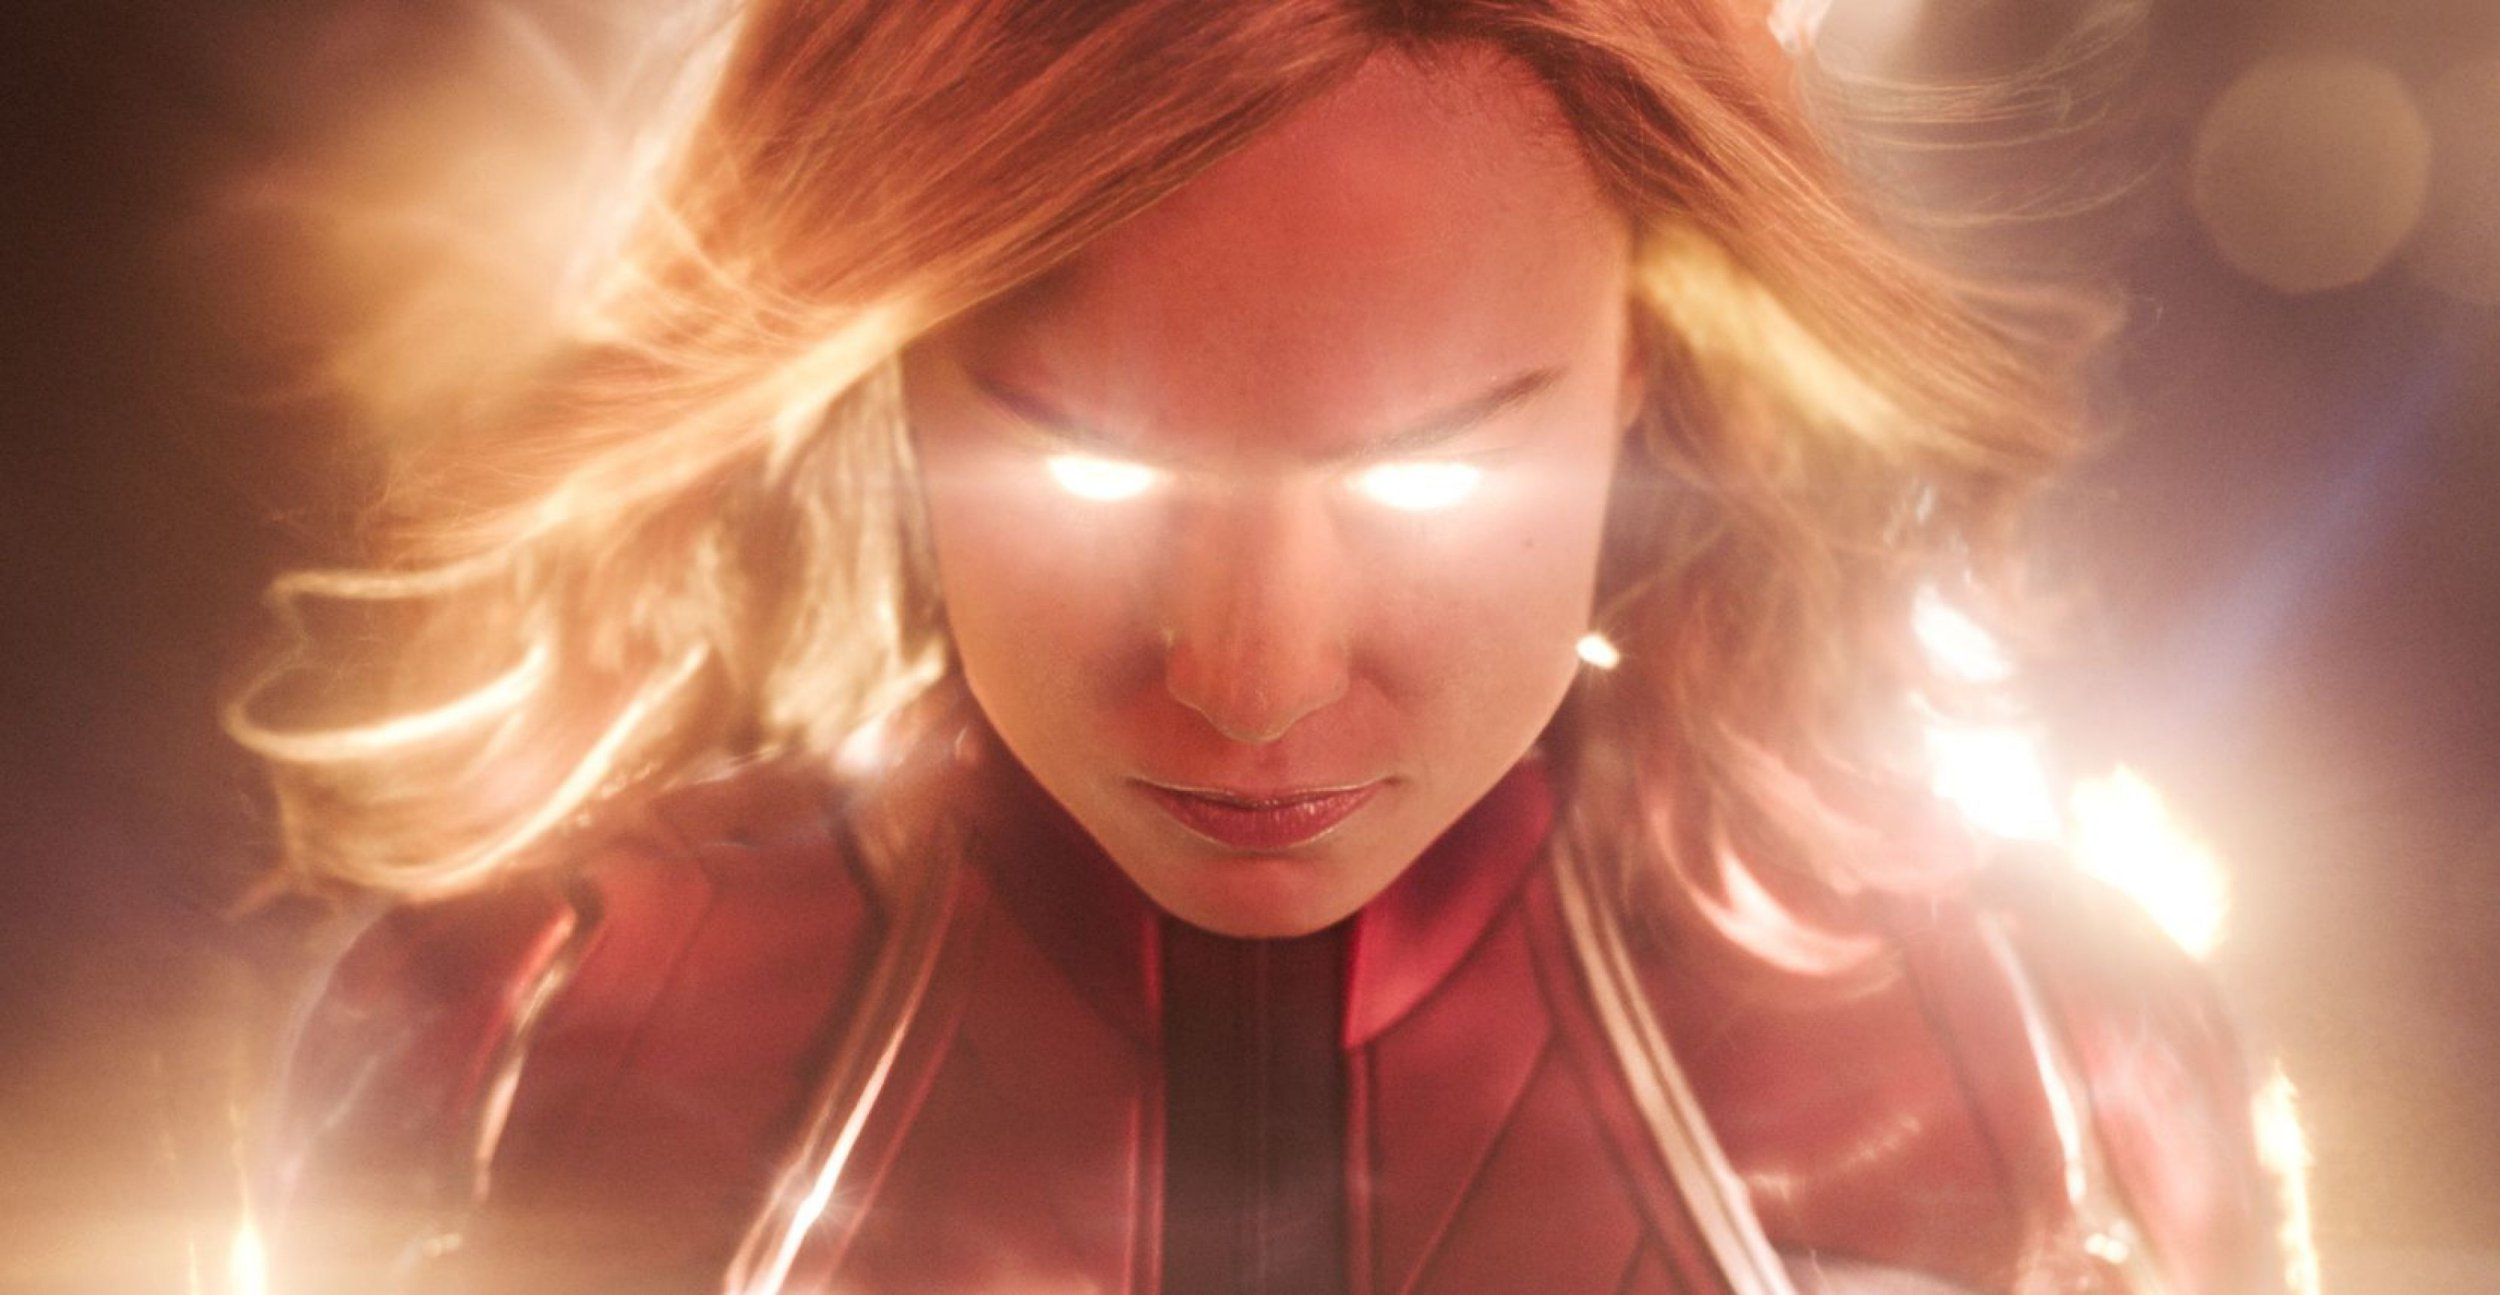 Captain Marvel fan notices several Pulp Fiction Easter eggs buried in new MCU release